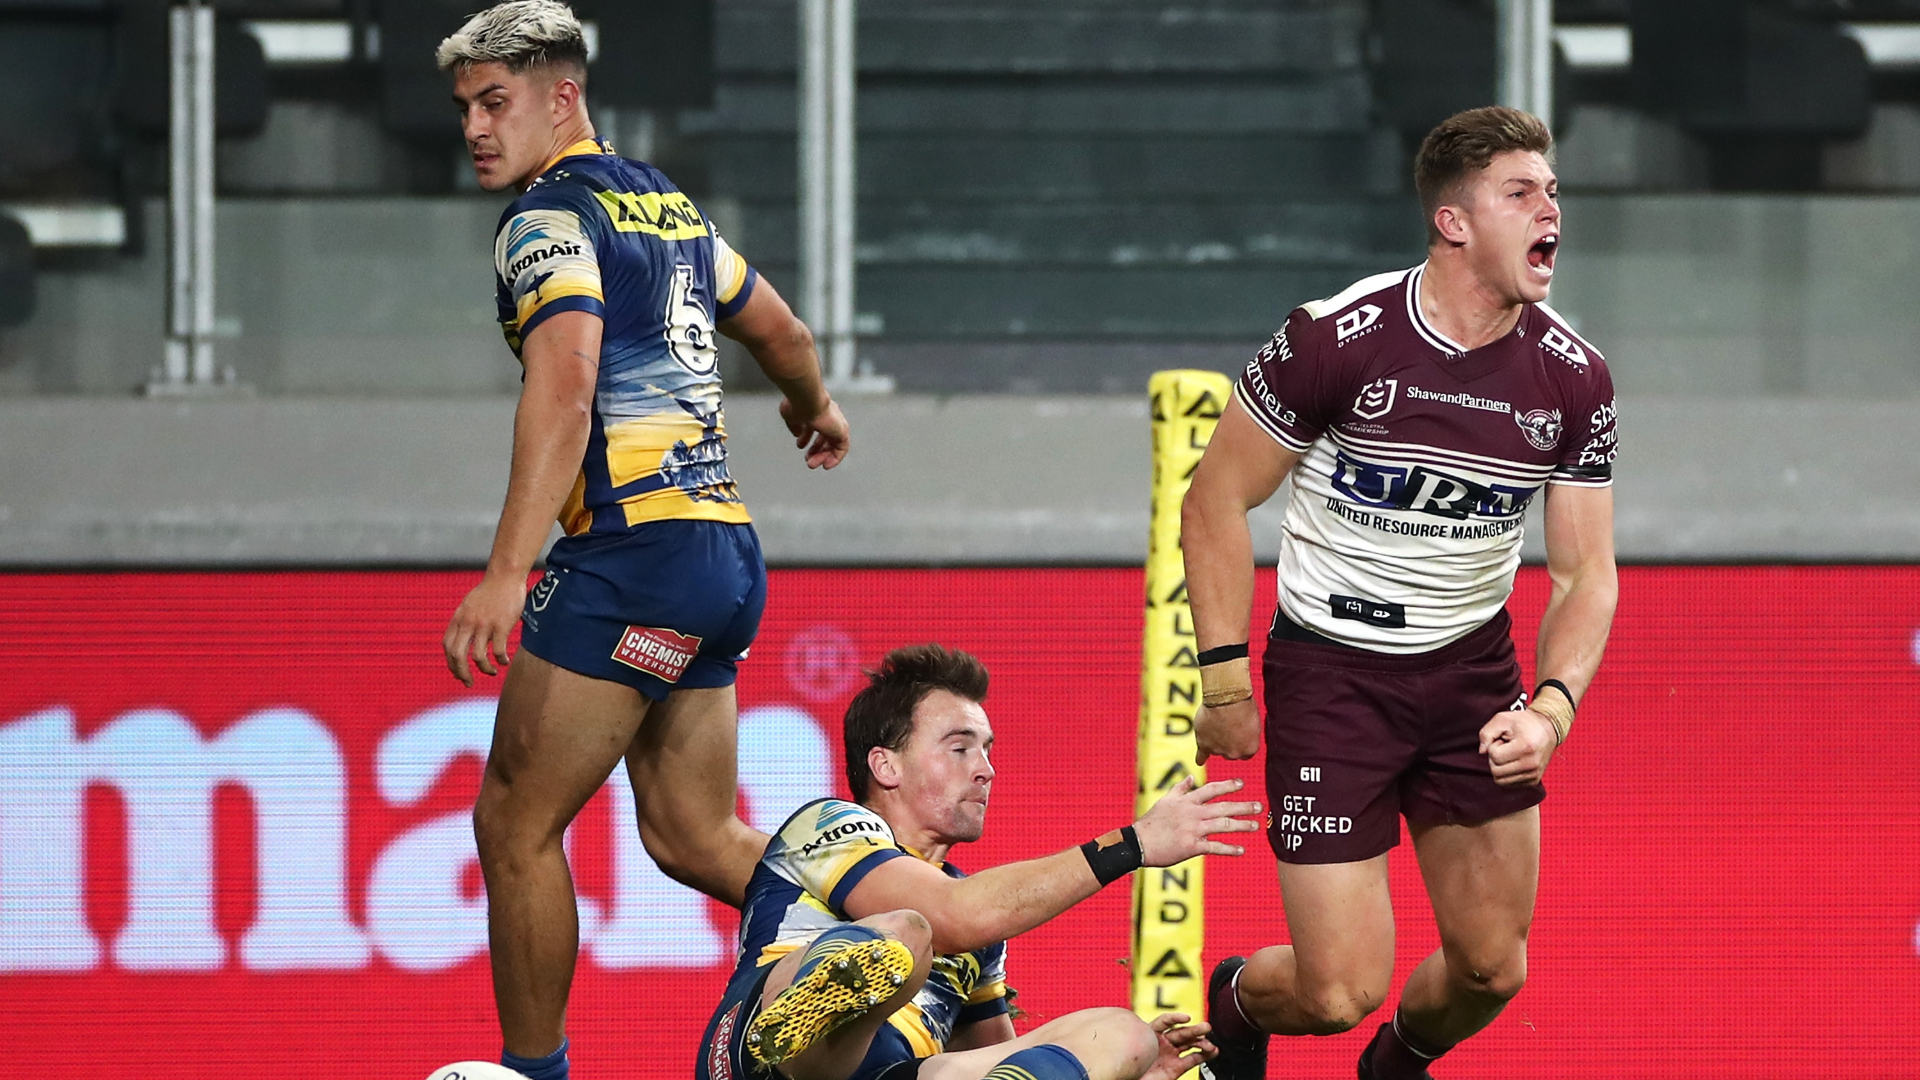 A contentious call scuppered Manly Sea Eagles as they came up short against Parramatta Eels, while Cronulla Sharks won at last.